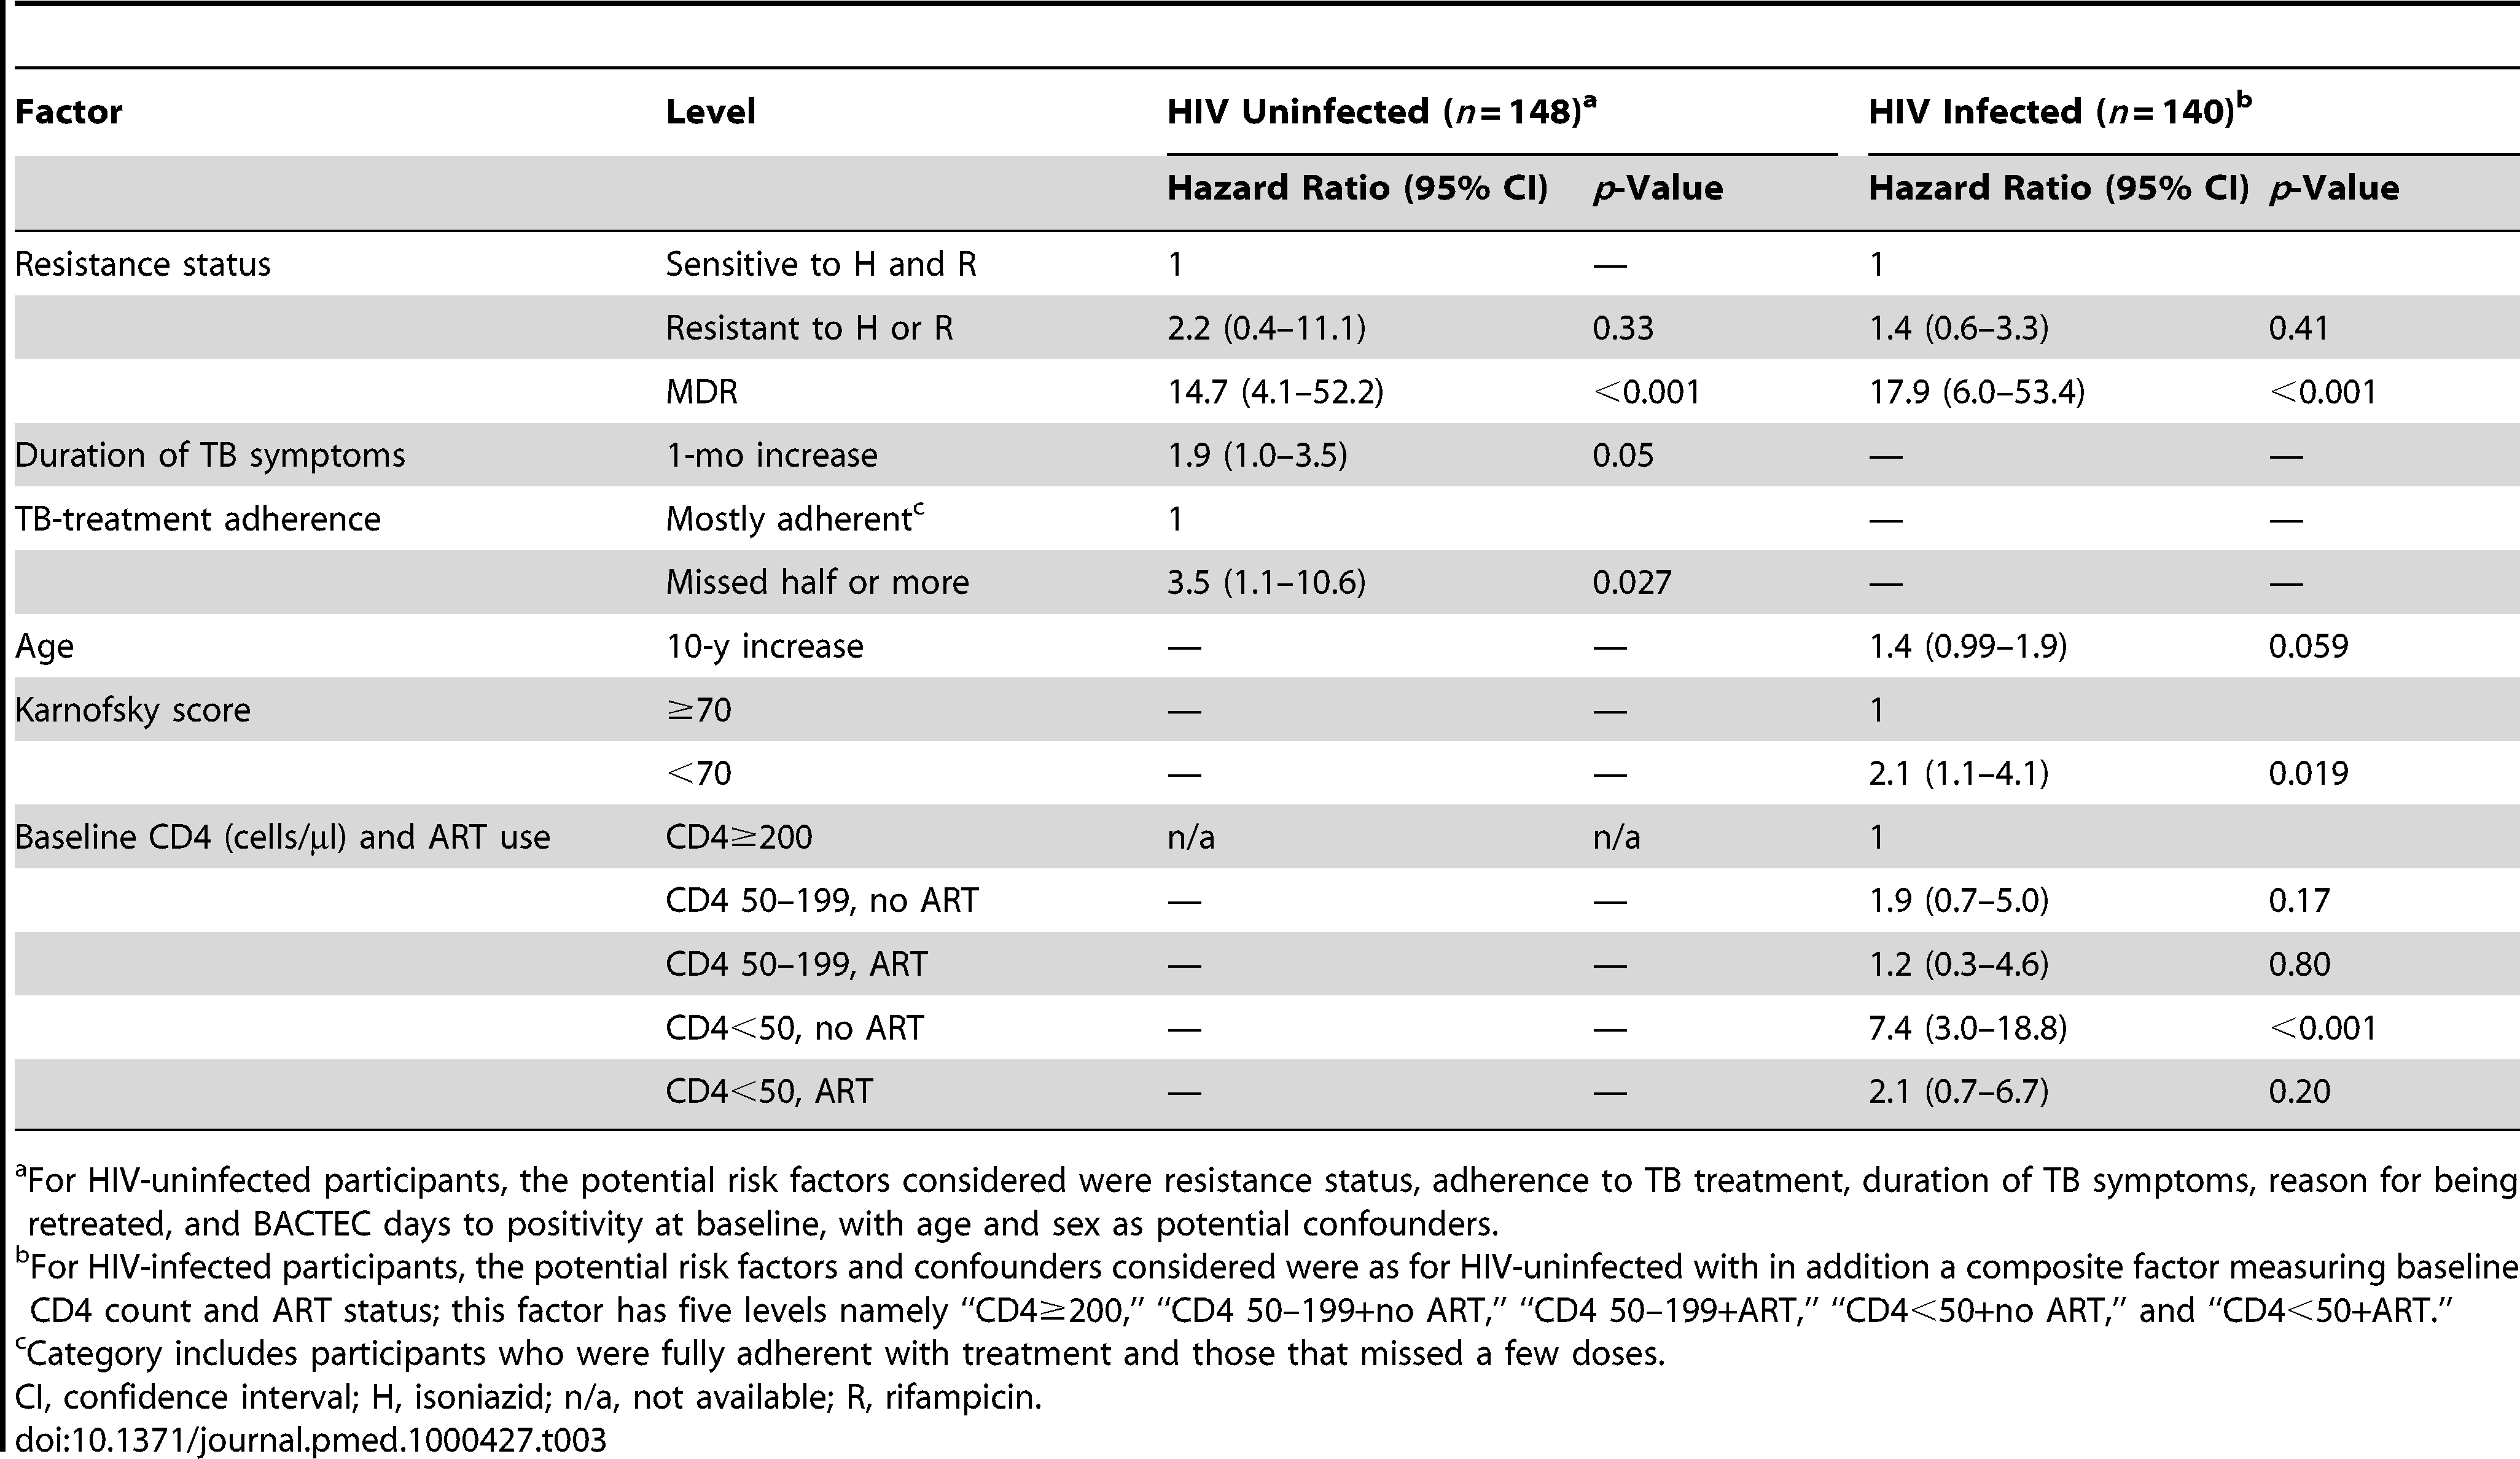 Mortality: results of fitting Cox proportional hazards regression models by HIV status.